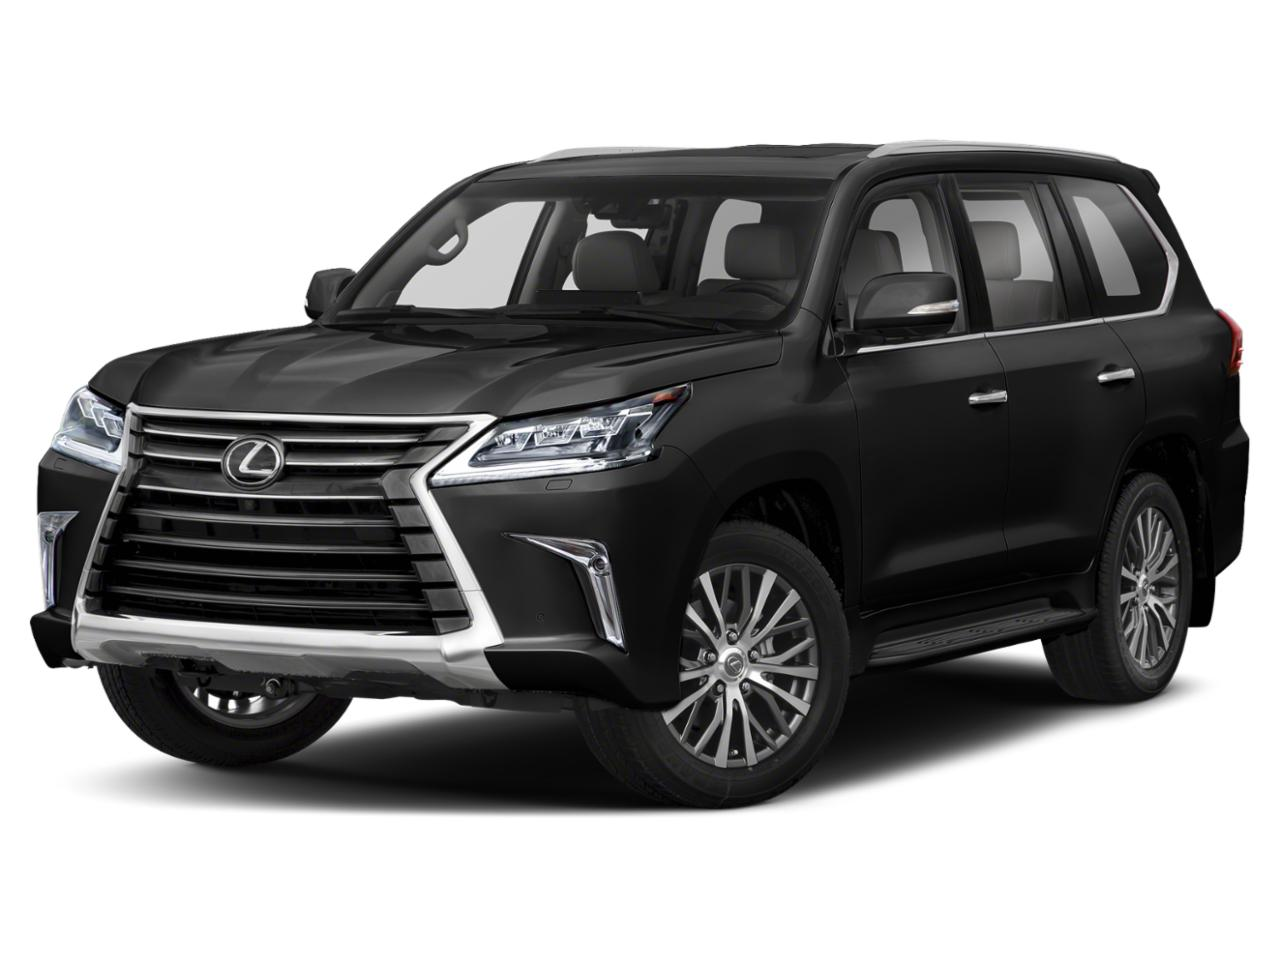 2021 Lexus LX 570 Vehicle Photo in Fort Worth, TX 76132